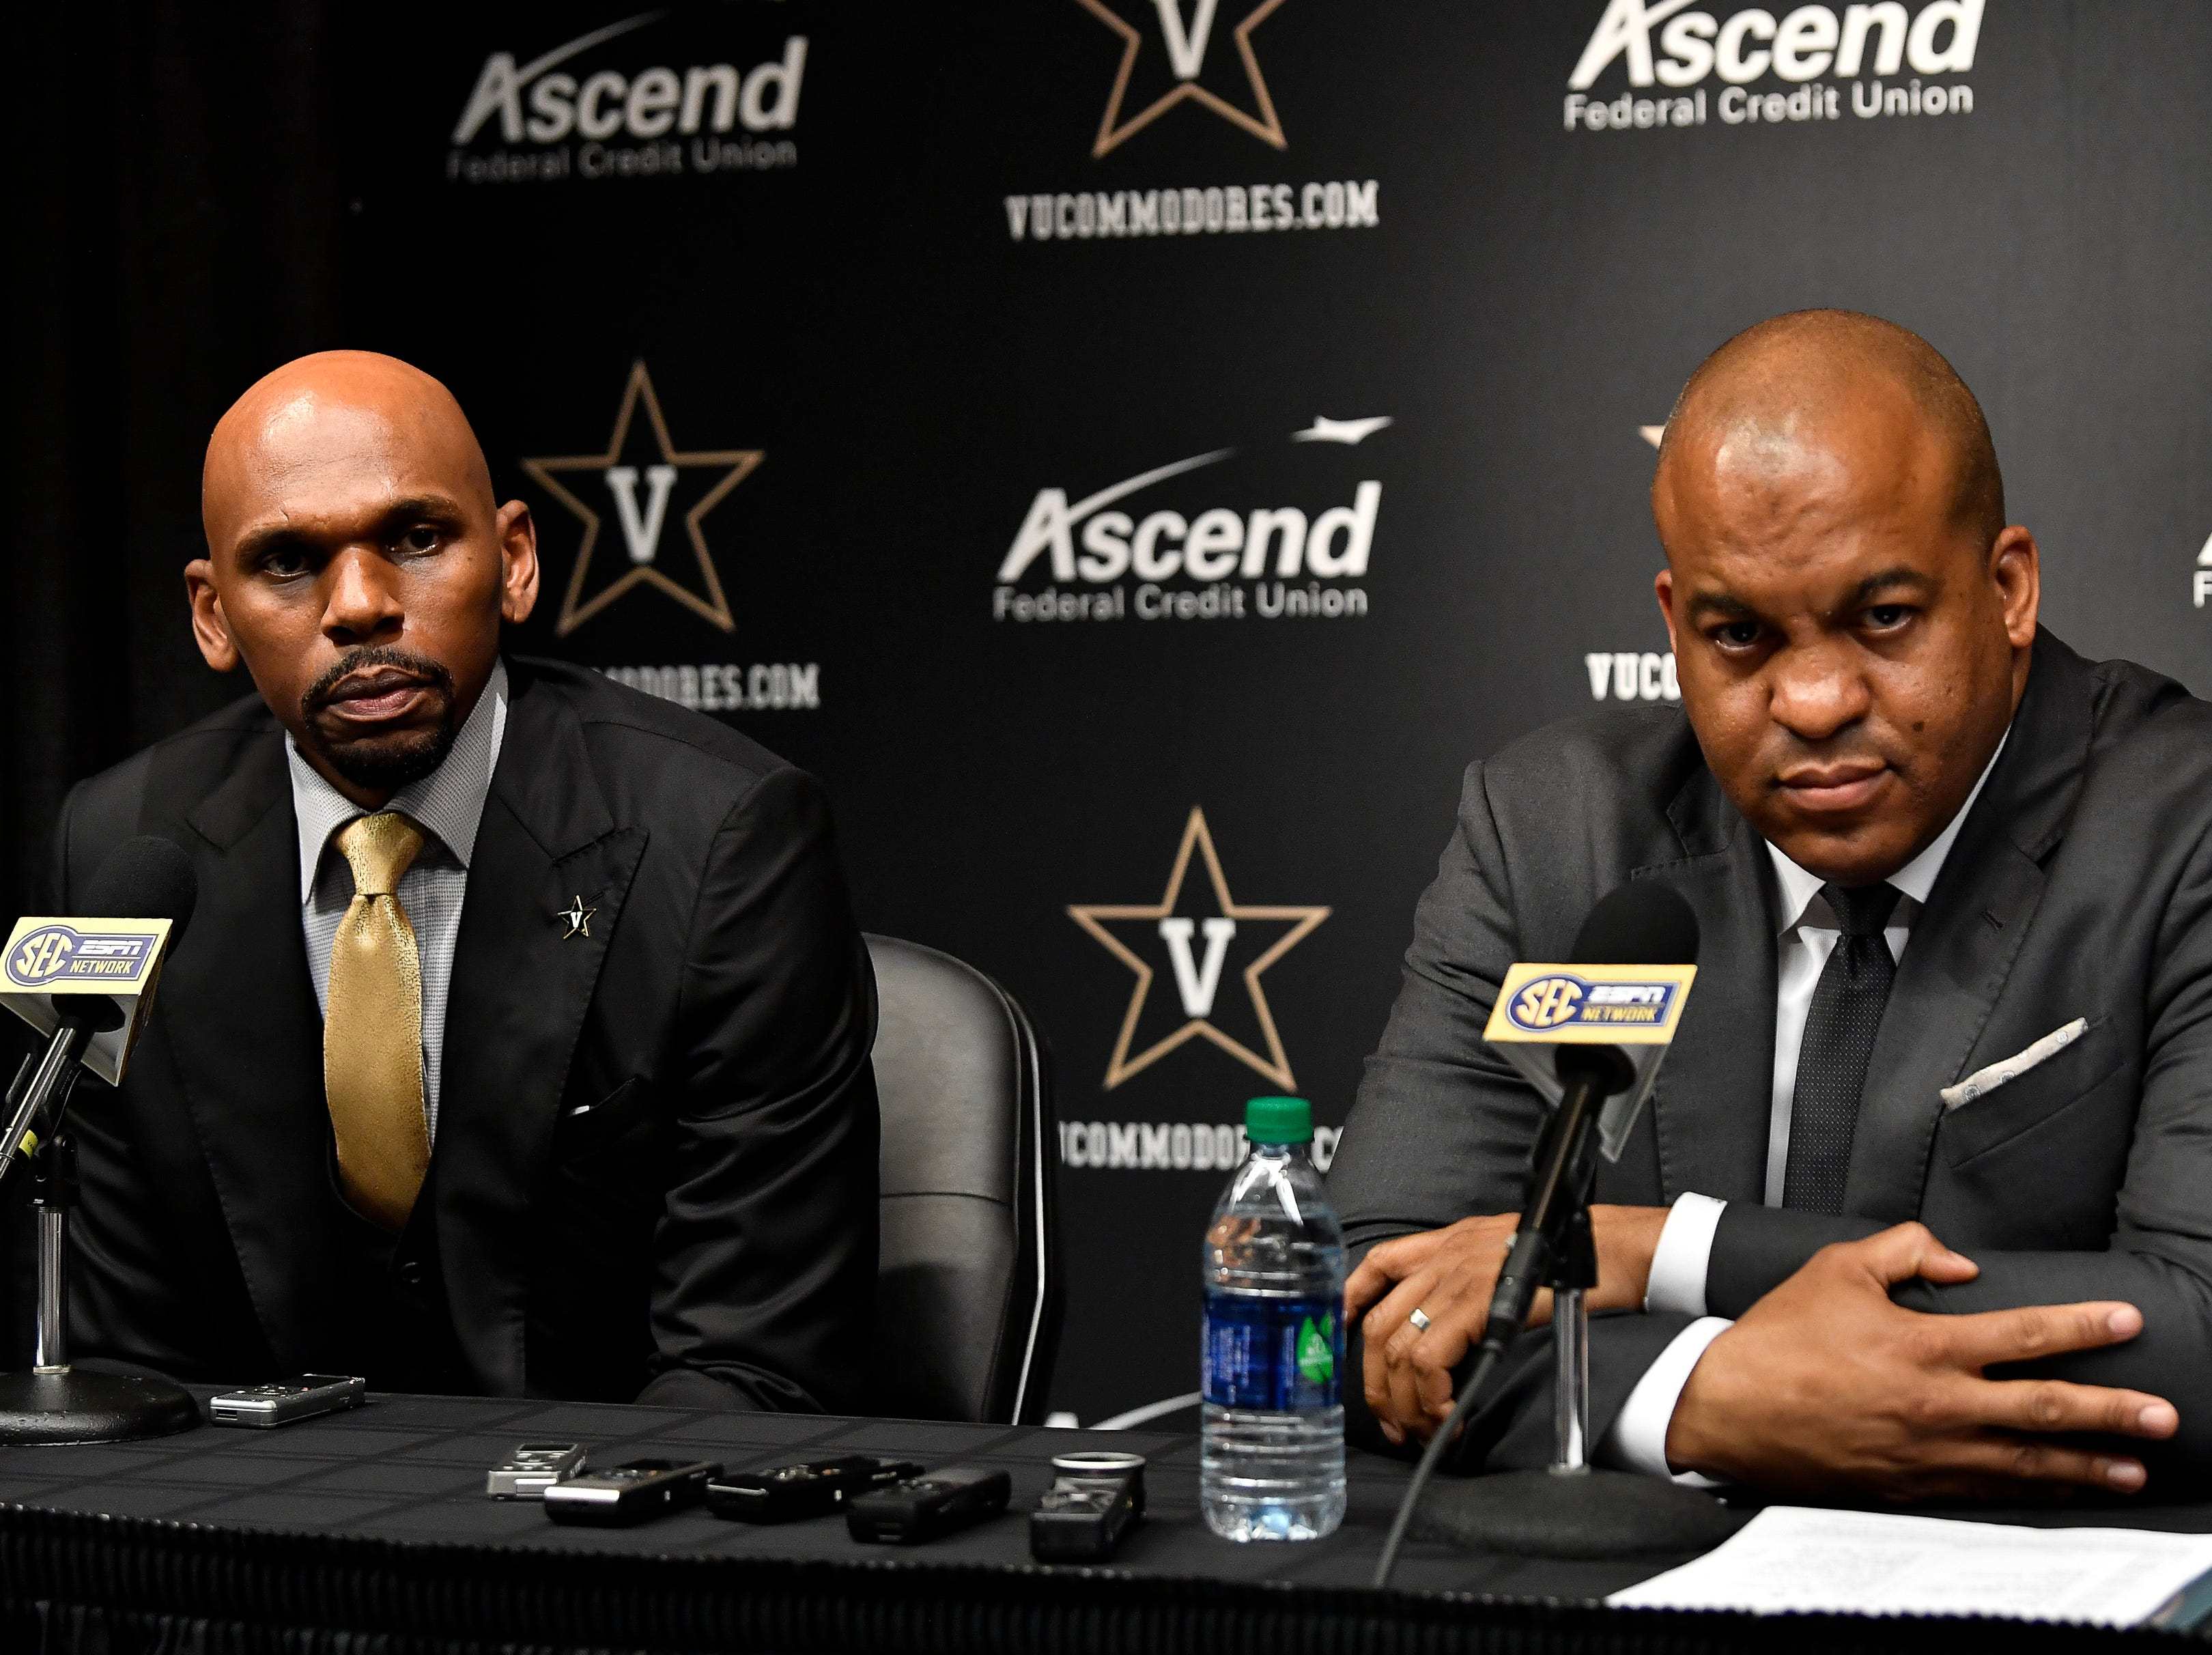 New Vanderbilt basketball coach Jerry Stackhouse and athletic director Malcolm Turner (rt) take questions during a press conference introducing Stackhouse at Memorial Gym Monday, April 8, 2019 in Nashville, Tenn.